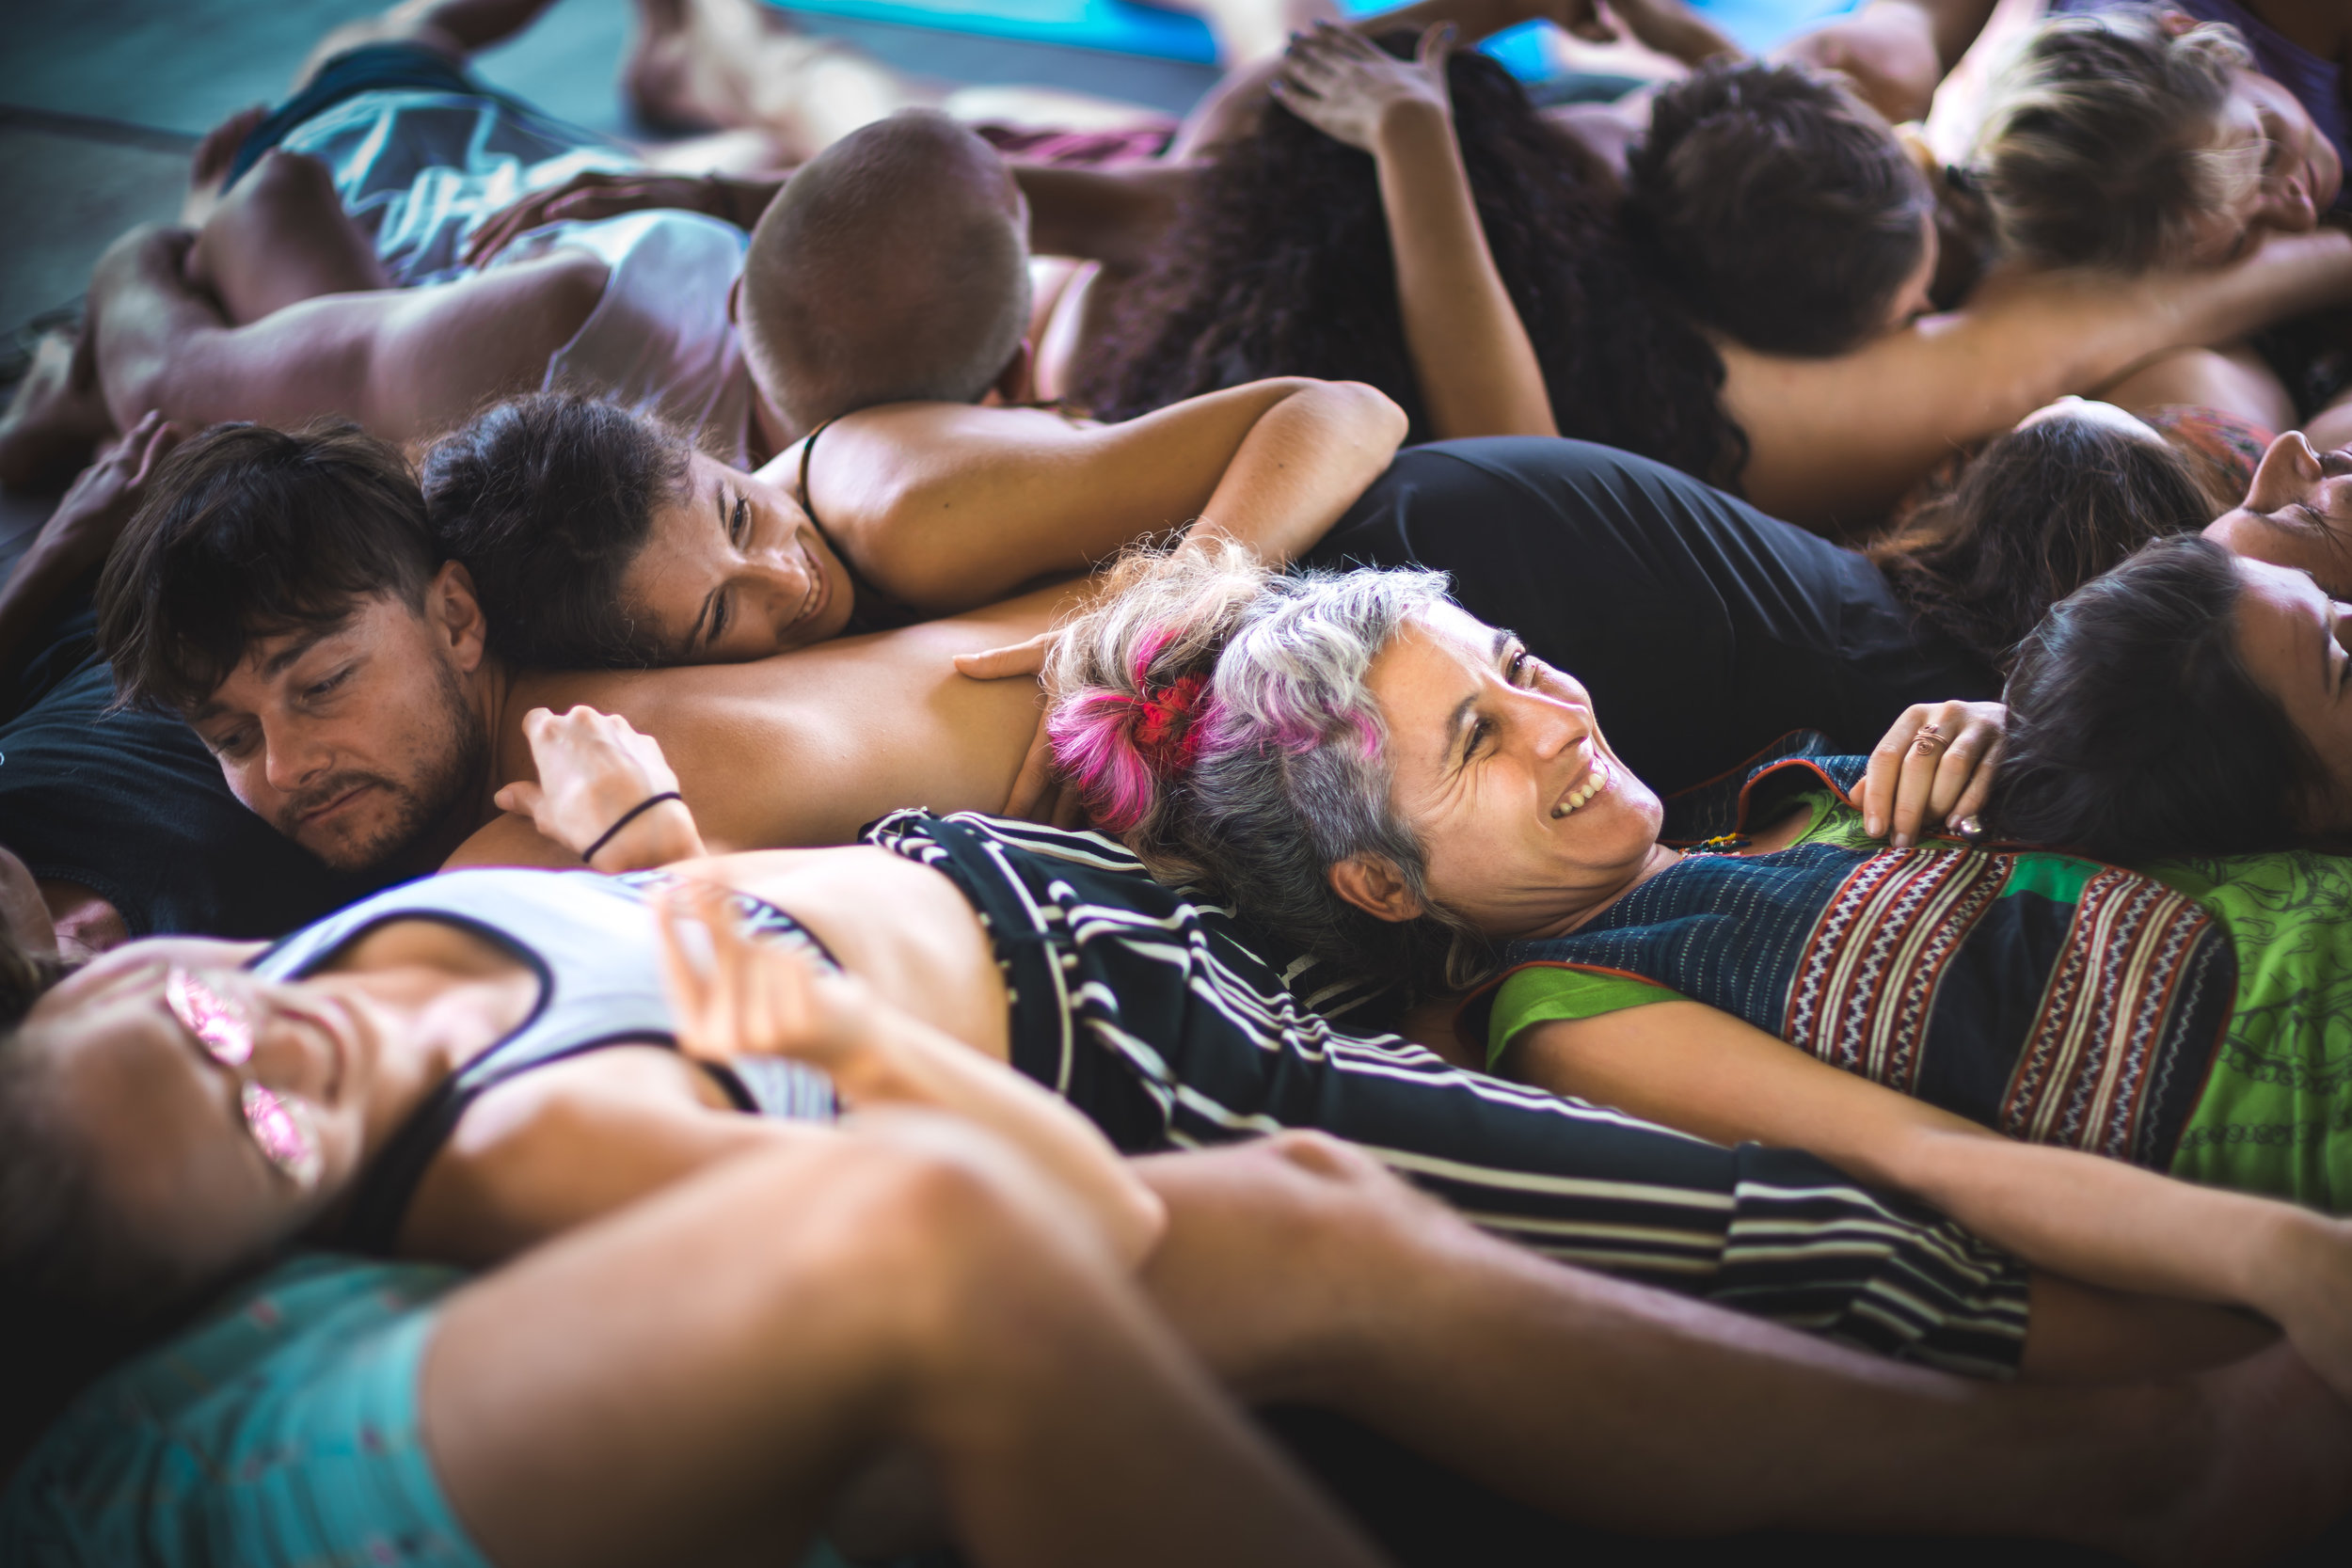 11th August, We Are One - 6:30: Optional Temazcal7:00: Meditation7:30 : Yoga Dance with EvaSion9:00 : Breakfast10:30 : Closing Circle13:30 : Lunch15.30: Wrap up and departure from Solana18:00: Optional ceremony with Sui Pinon.